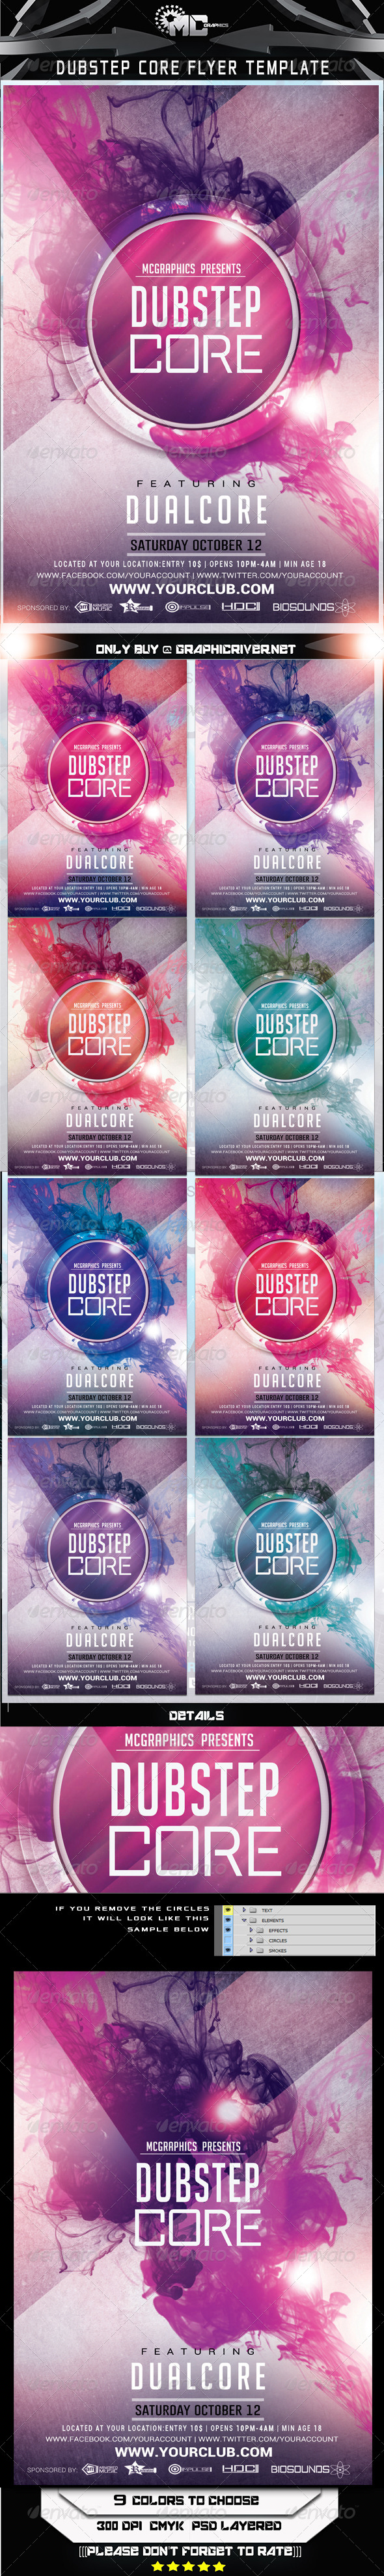 GraphicRiver Dubstep Core Flyer Template 7190505